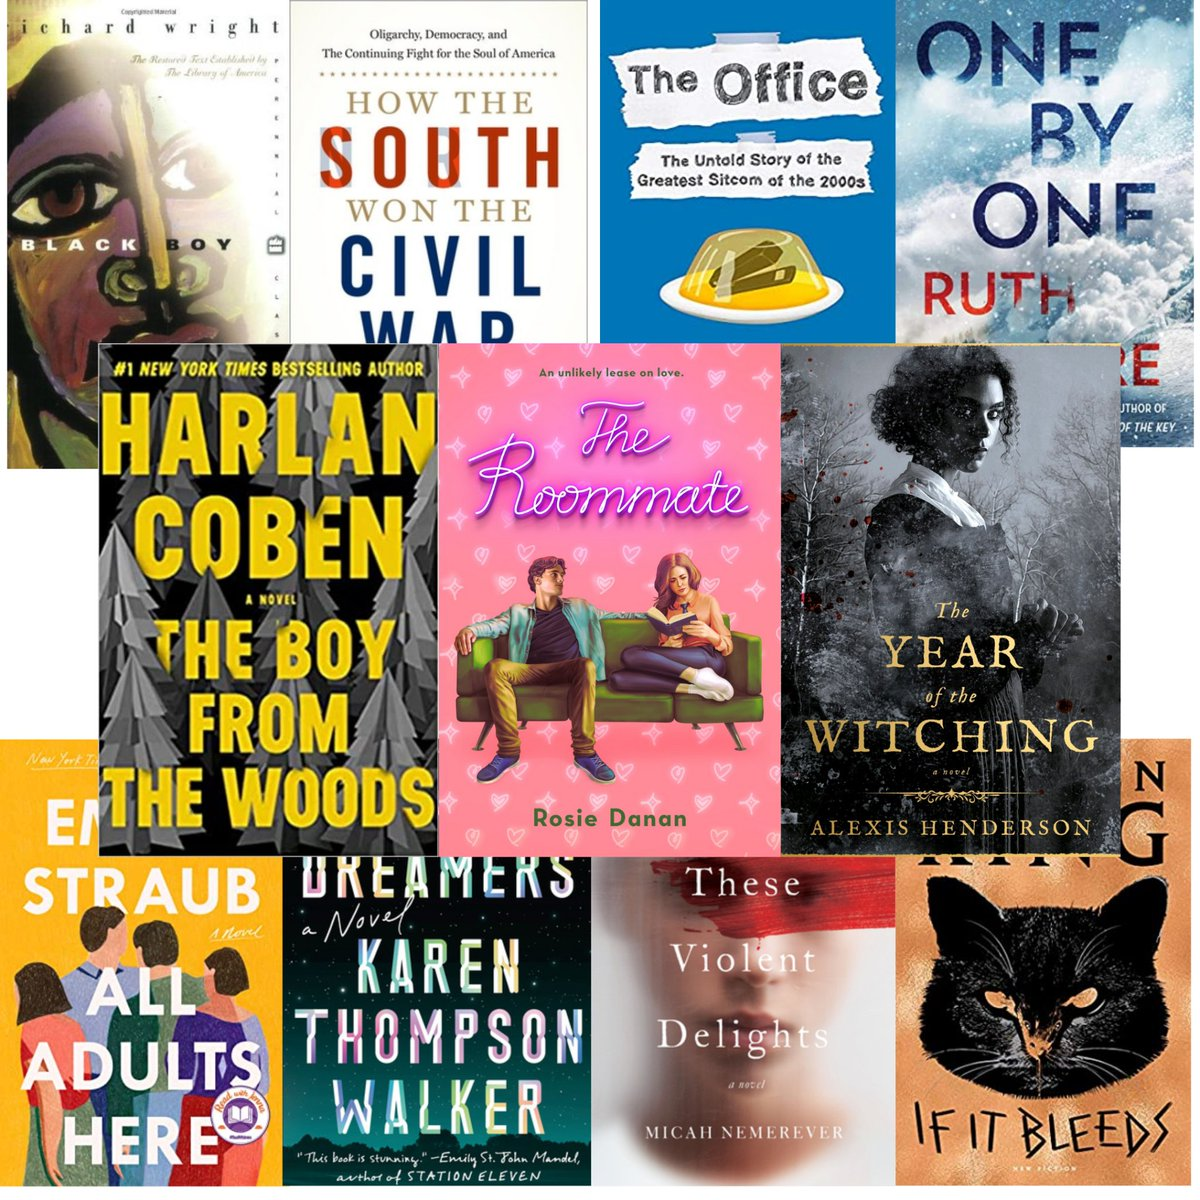 Our staff is gearing up for fall with some spooky reads and high-stakes viewing (like getting ready for postseason baseball)! Check out the full list on LPLS Recommends!